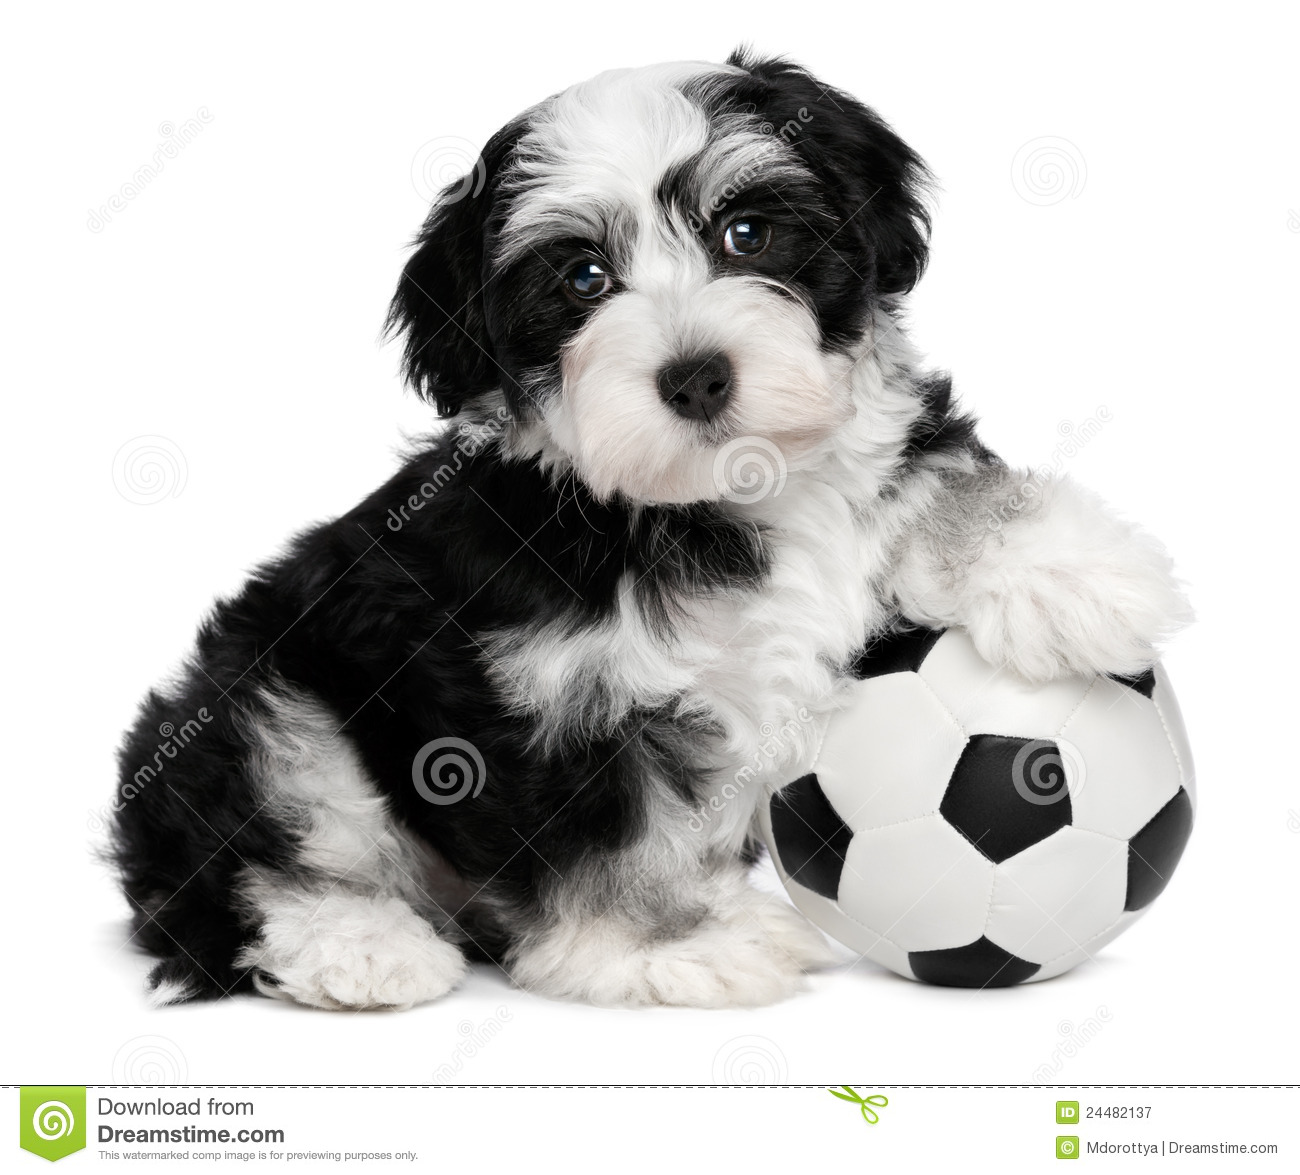 Simple Pitbull Anime Adorable Dog - cute-havanese-puppy-dog-soccer-ball-24482137  Graphic_132121  .jpg